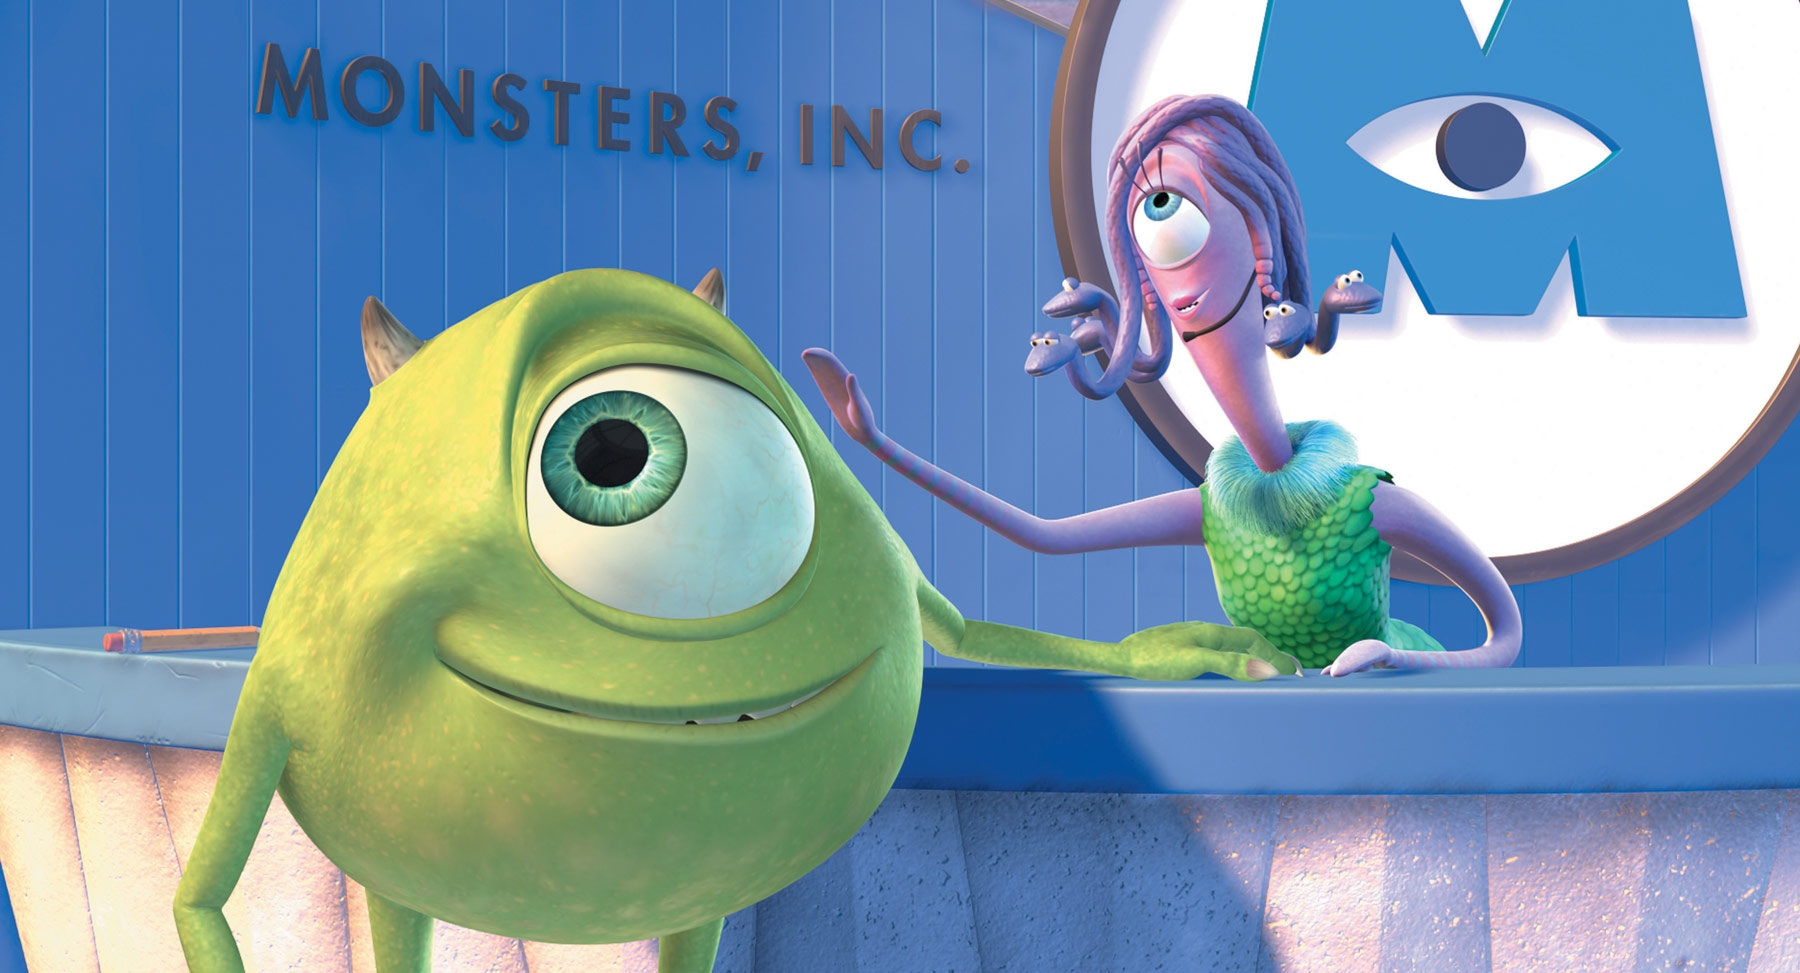 Monster Inc Invites with great invitations ideas